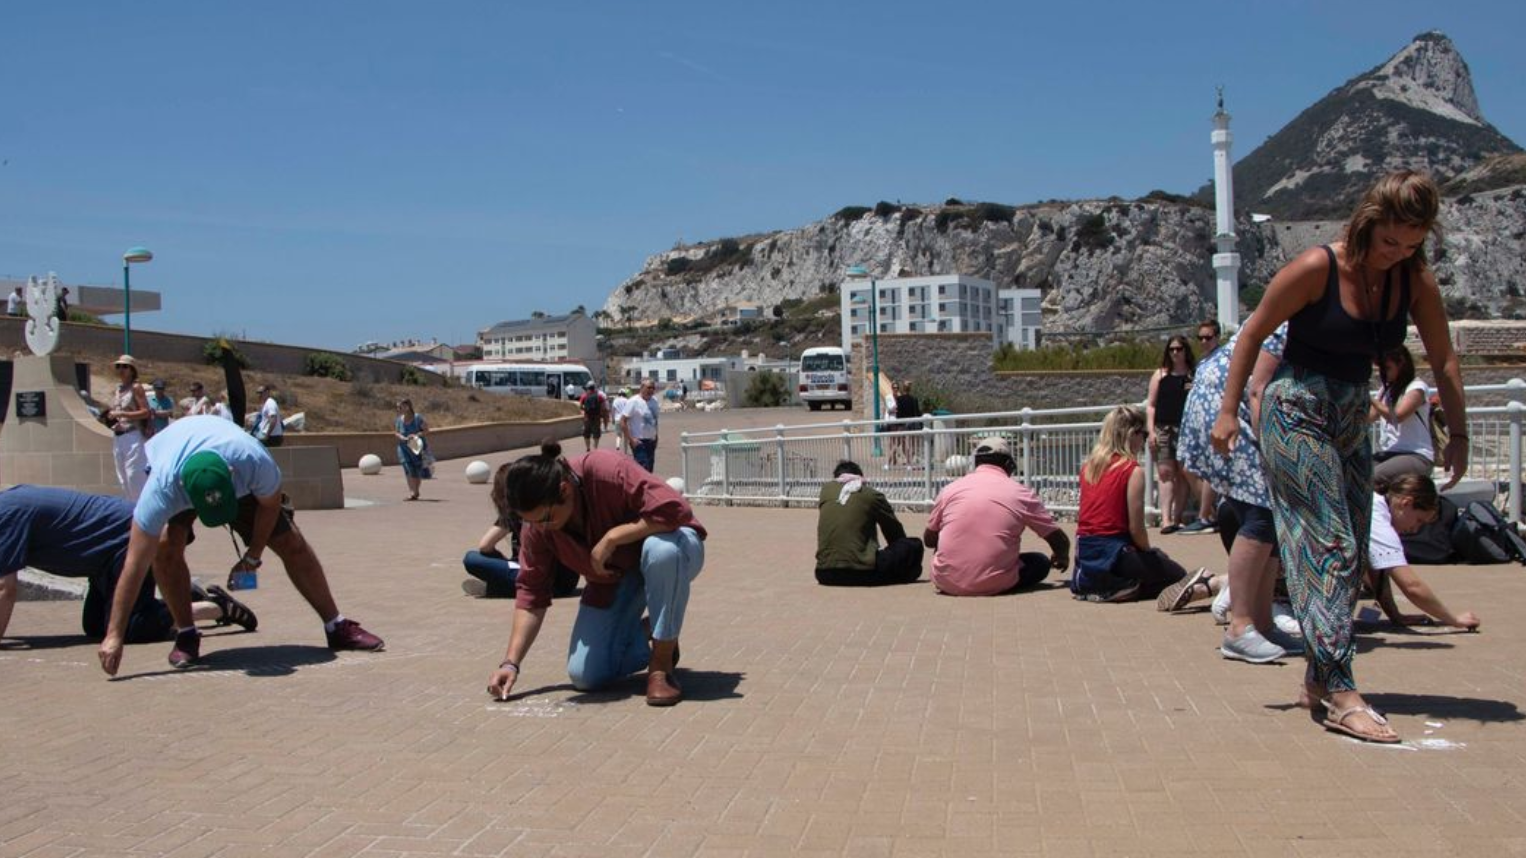 Gibraltarian identity explored at Island Games Art Residency